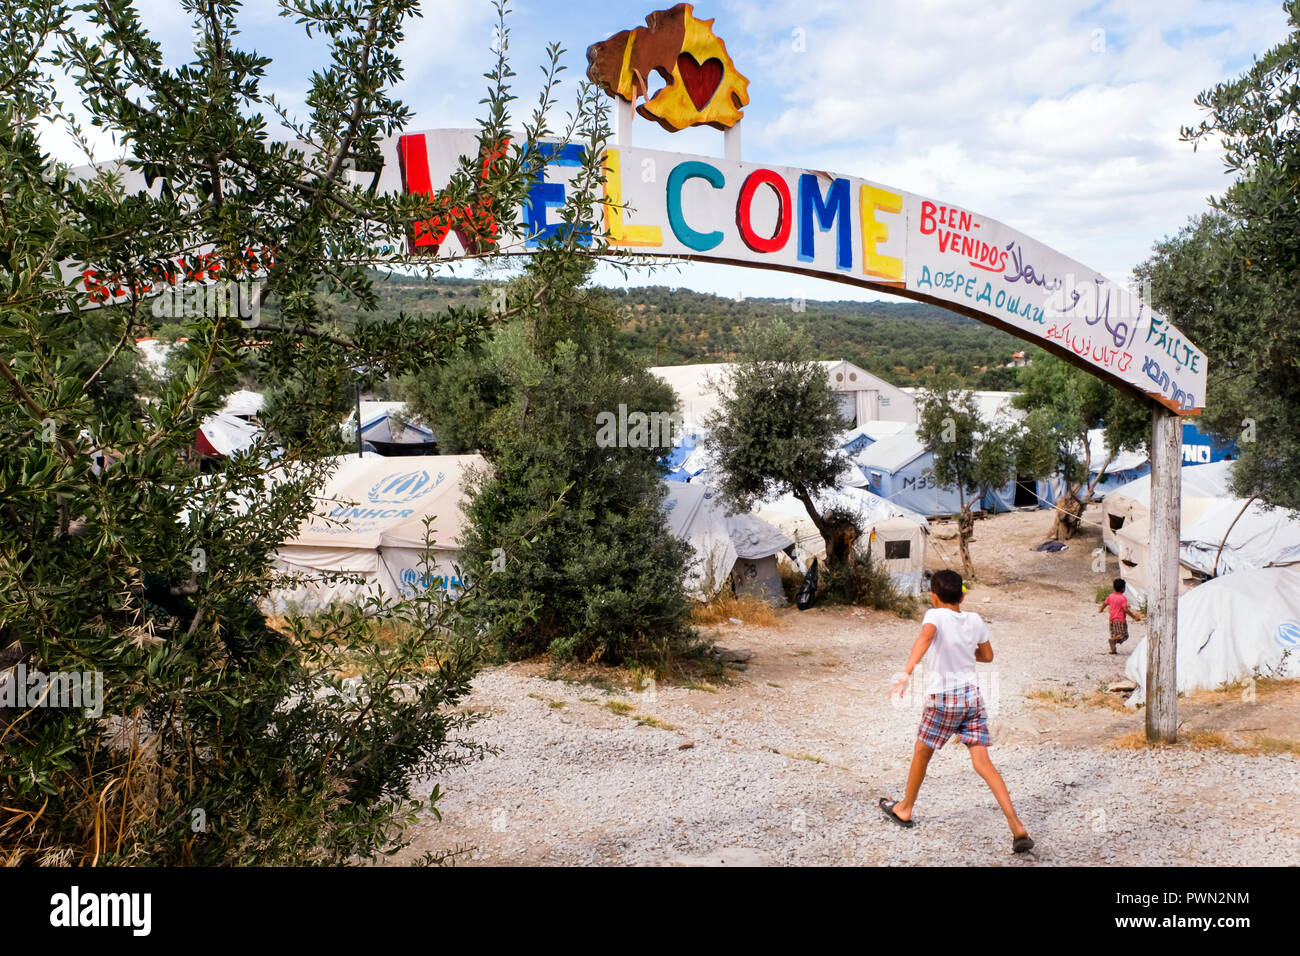 Welcome sign above the tent camp next to the camp MORIA CAMP for refugees who came over by boat from nearby Turkey. Island of Lesbos, Greece, May 2018 - Stock Image